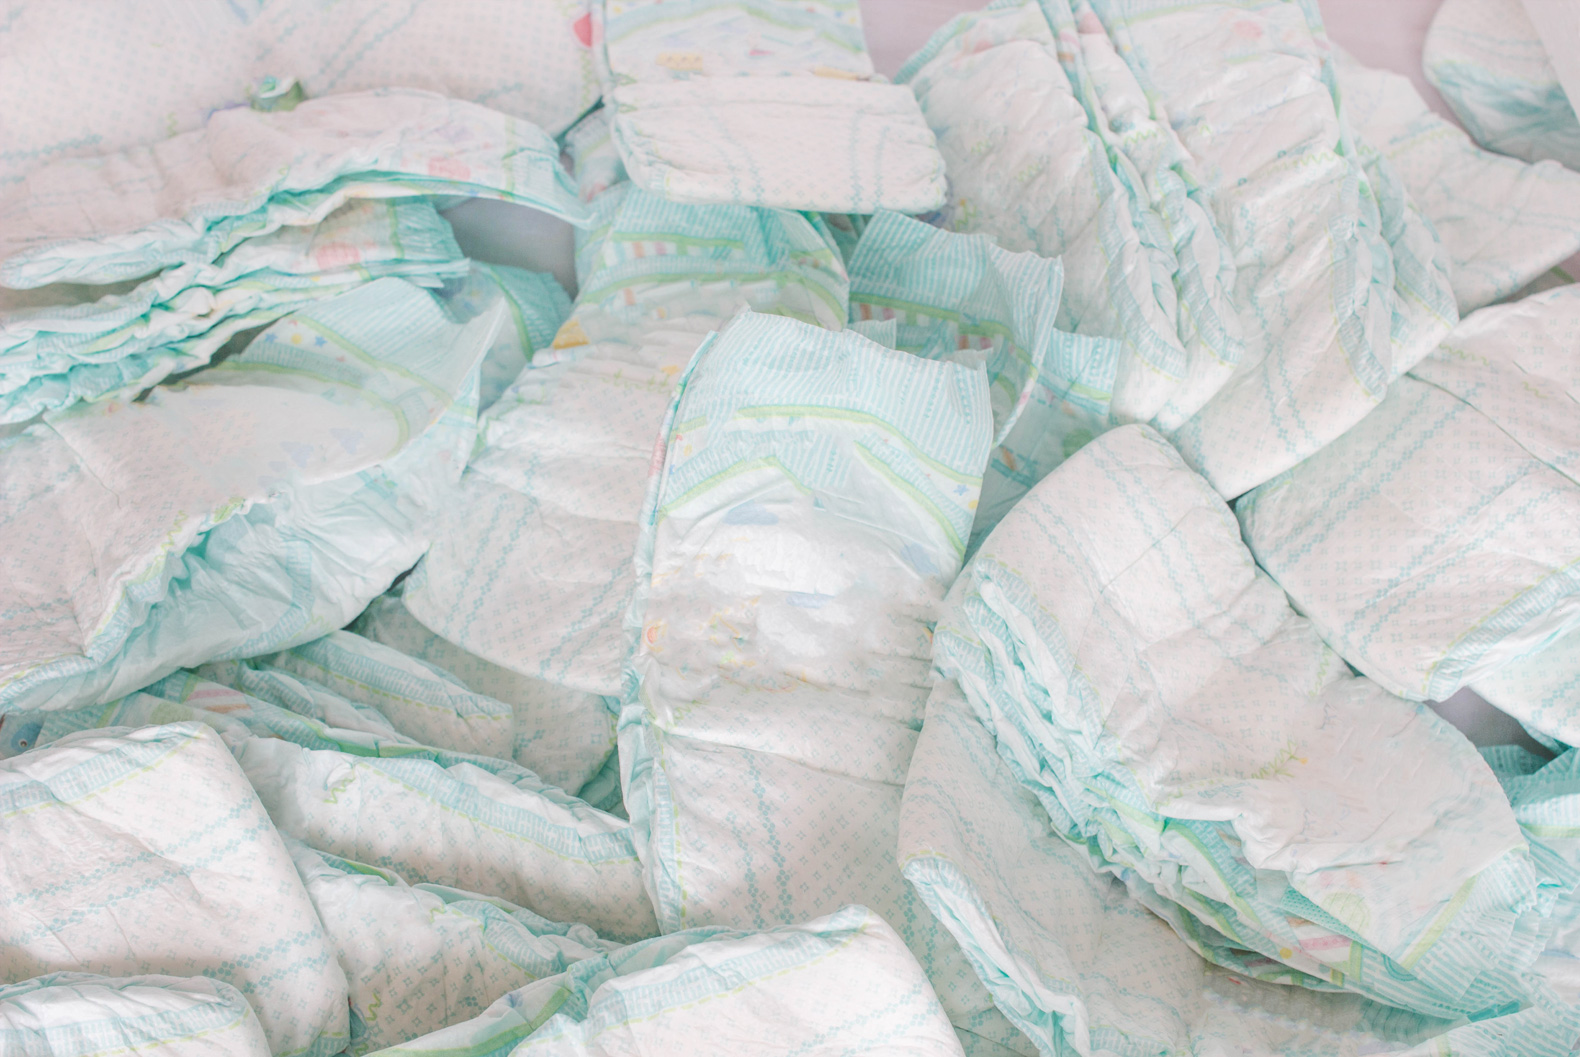 New study finds harmful chemicals, including glyphosate, in disposable diapers